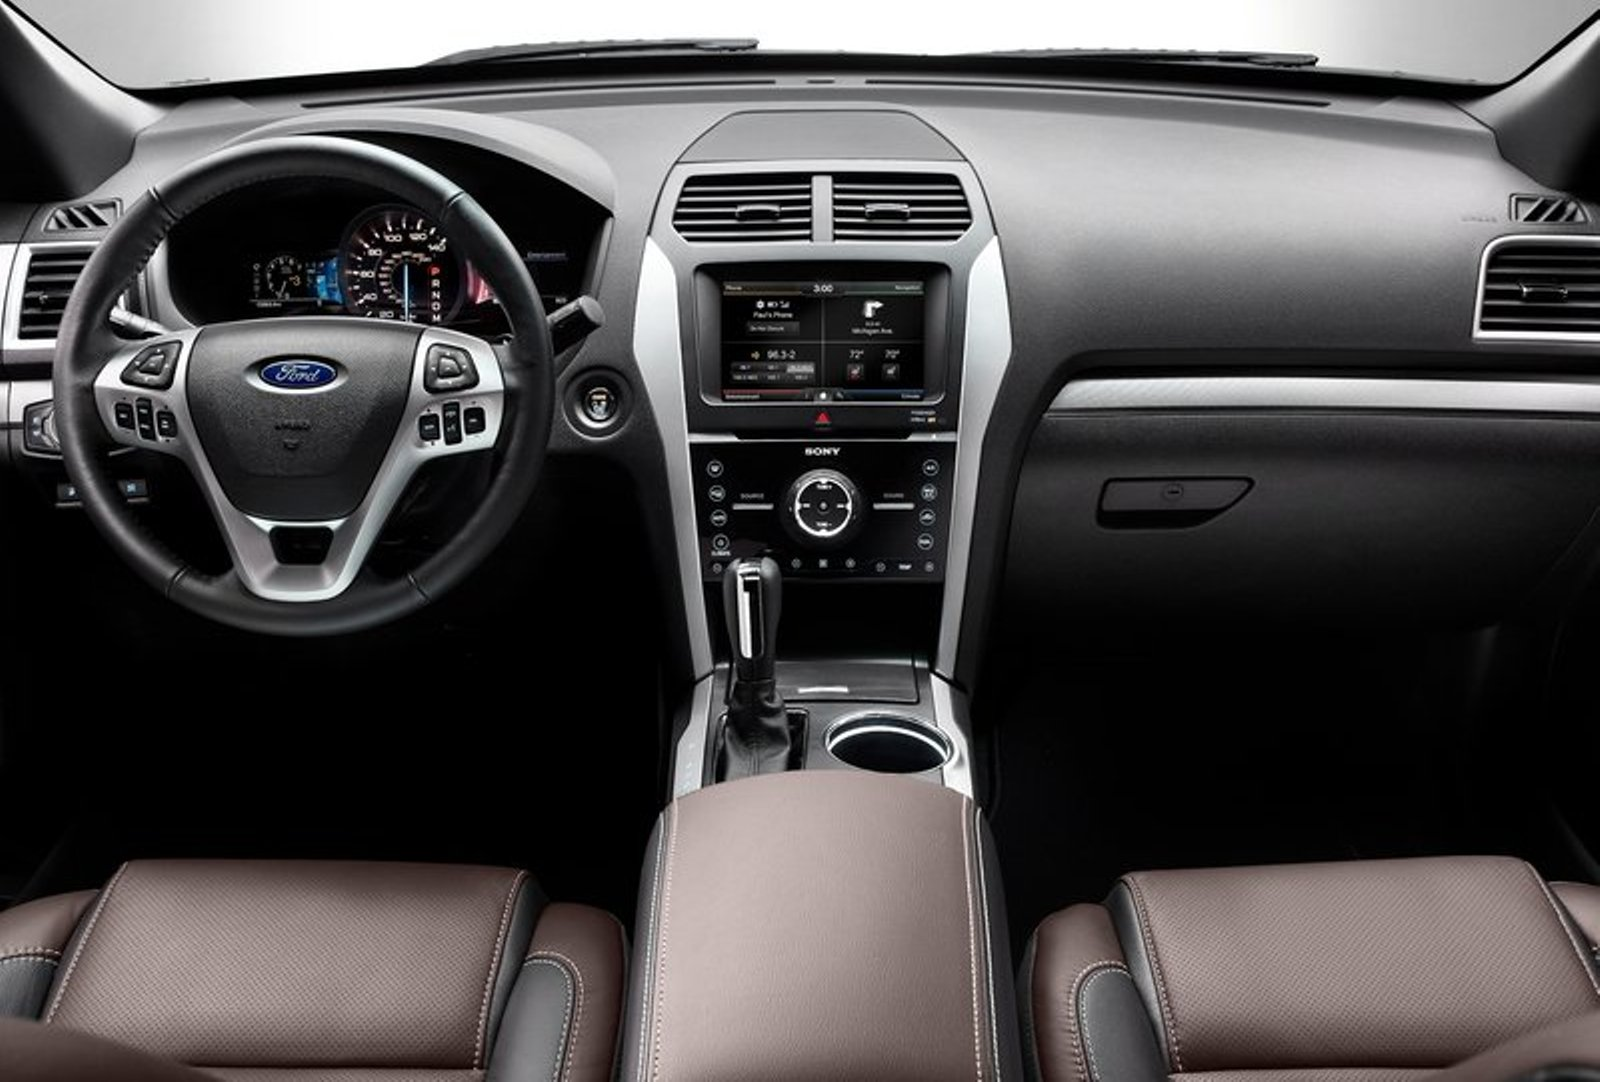 2014 Ford Explorer With Powerful Perform The News Articles Reviews Comments Prices Of Cars